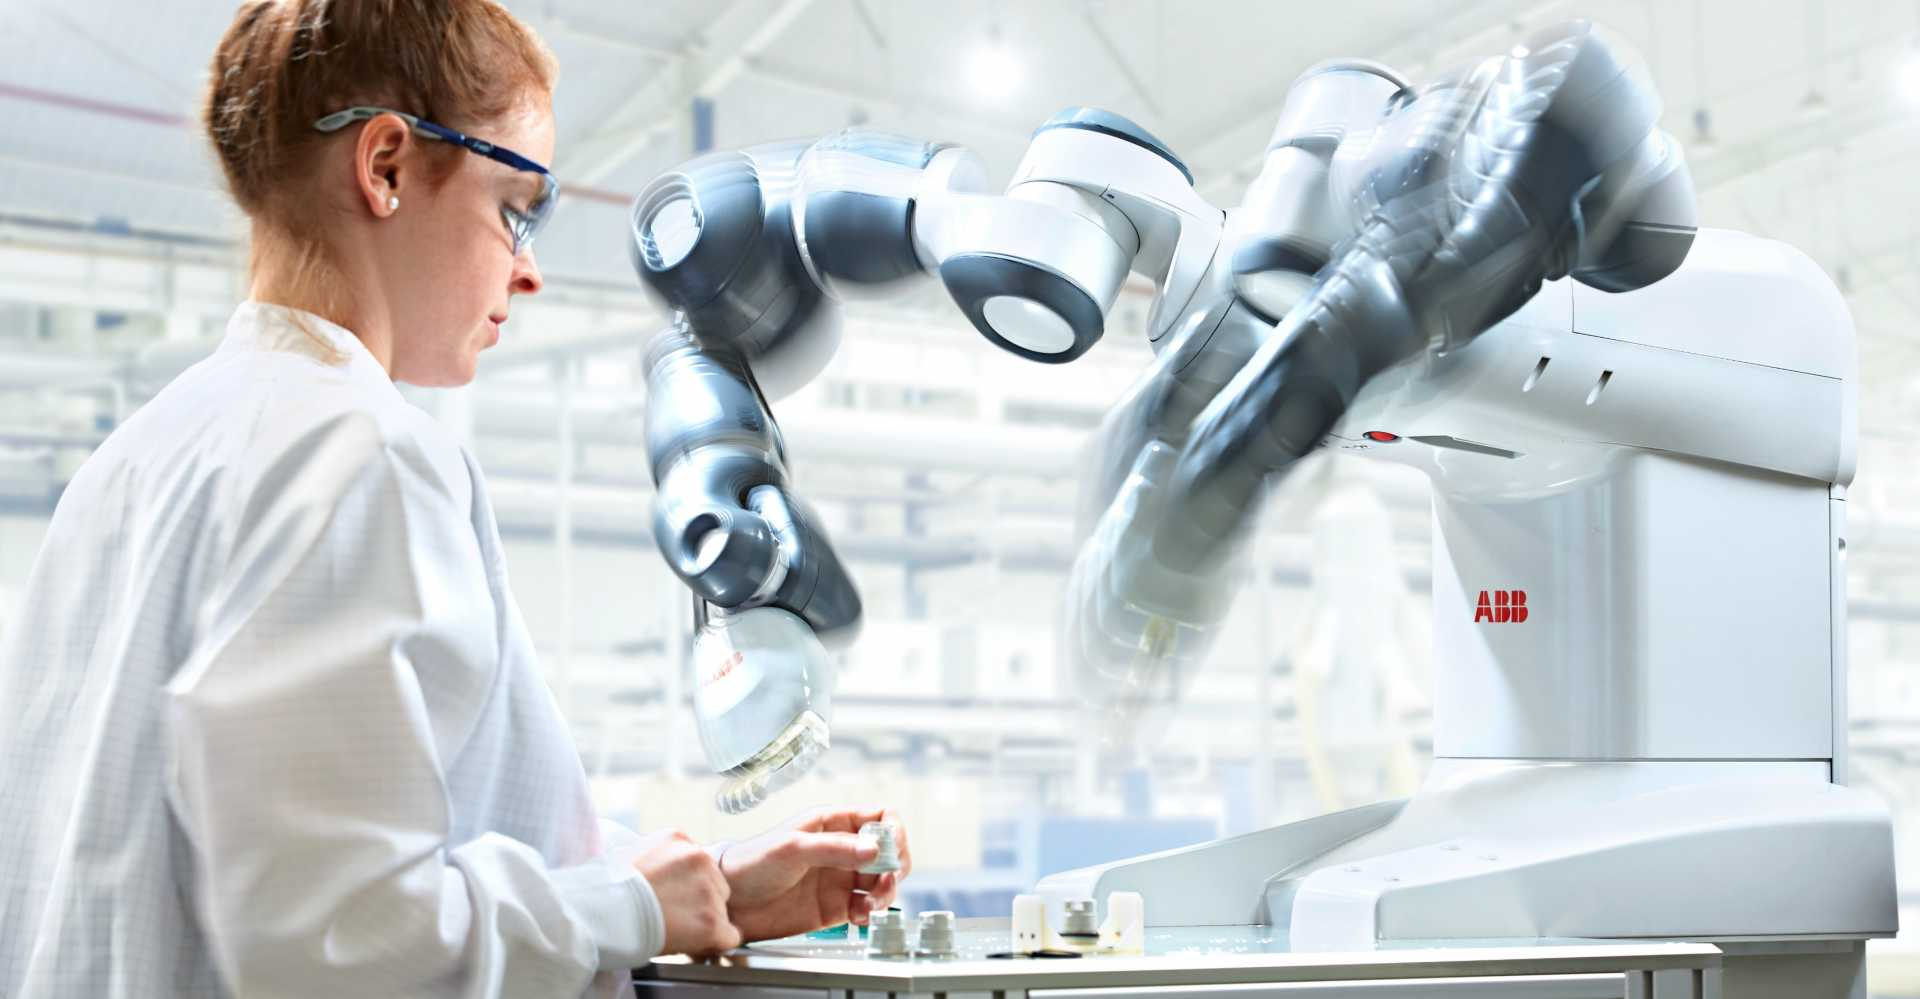 ABB Robotics' YuMi is designed to be used in close proximity to regular personnel (image courtesy of ABB).